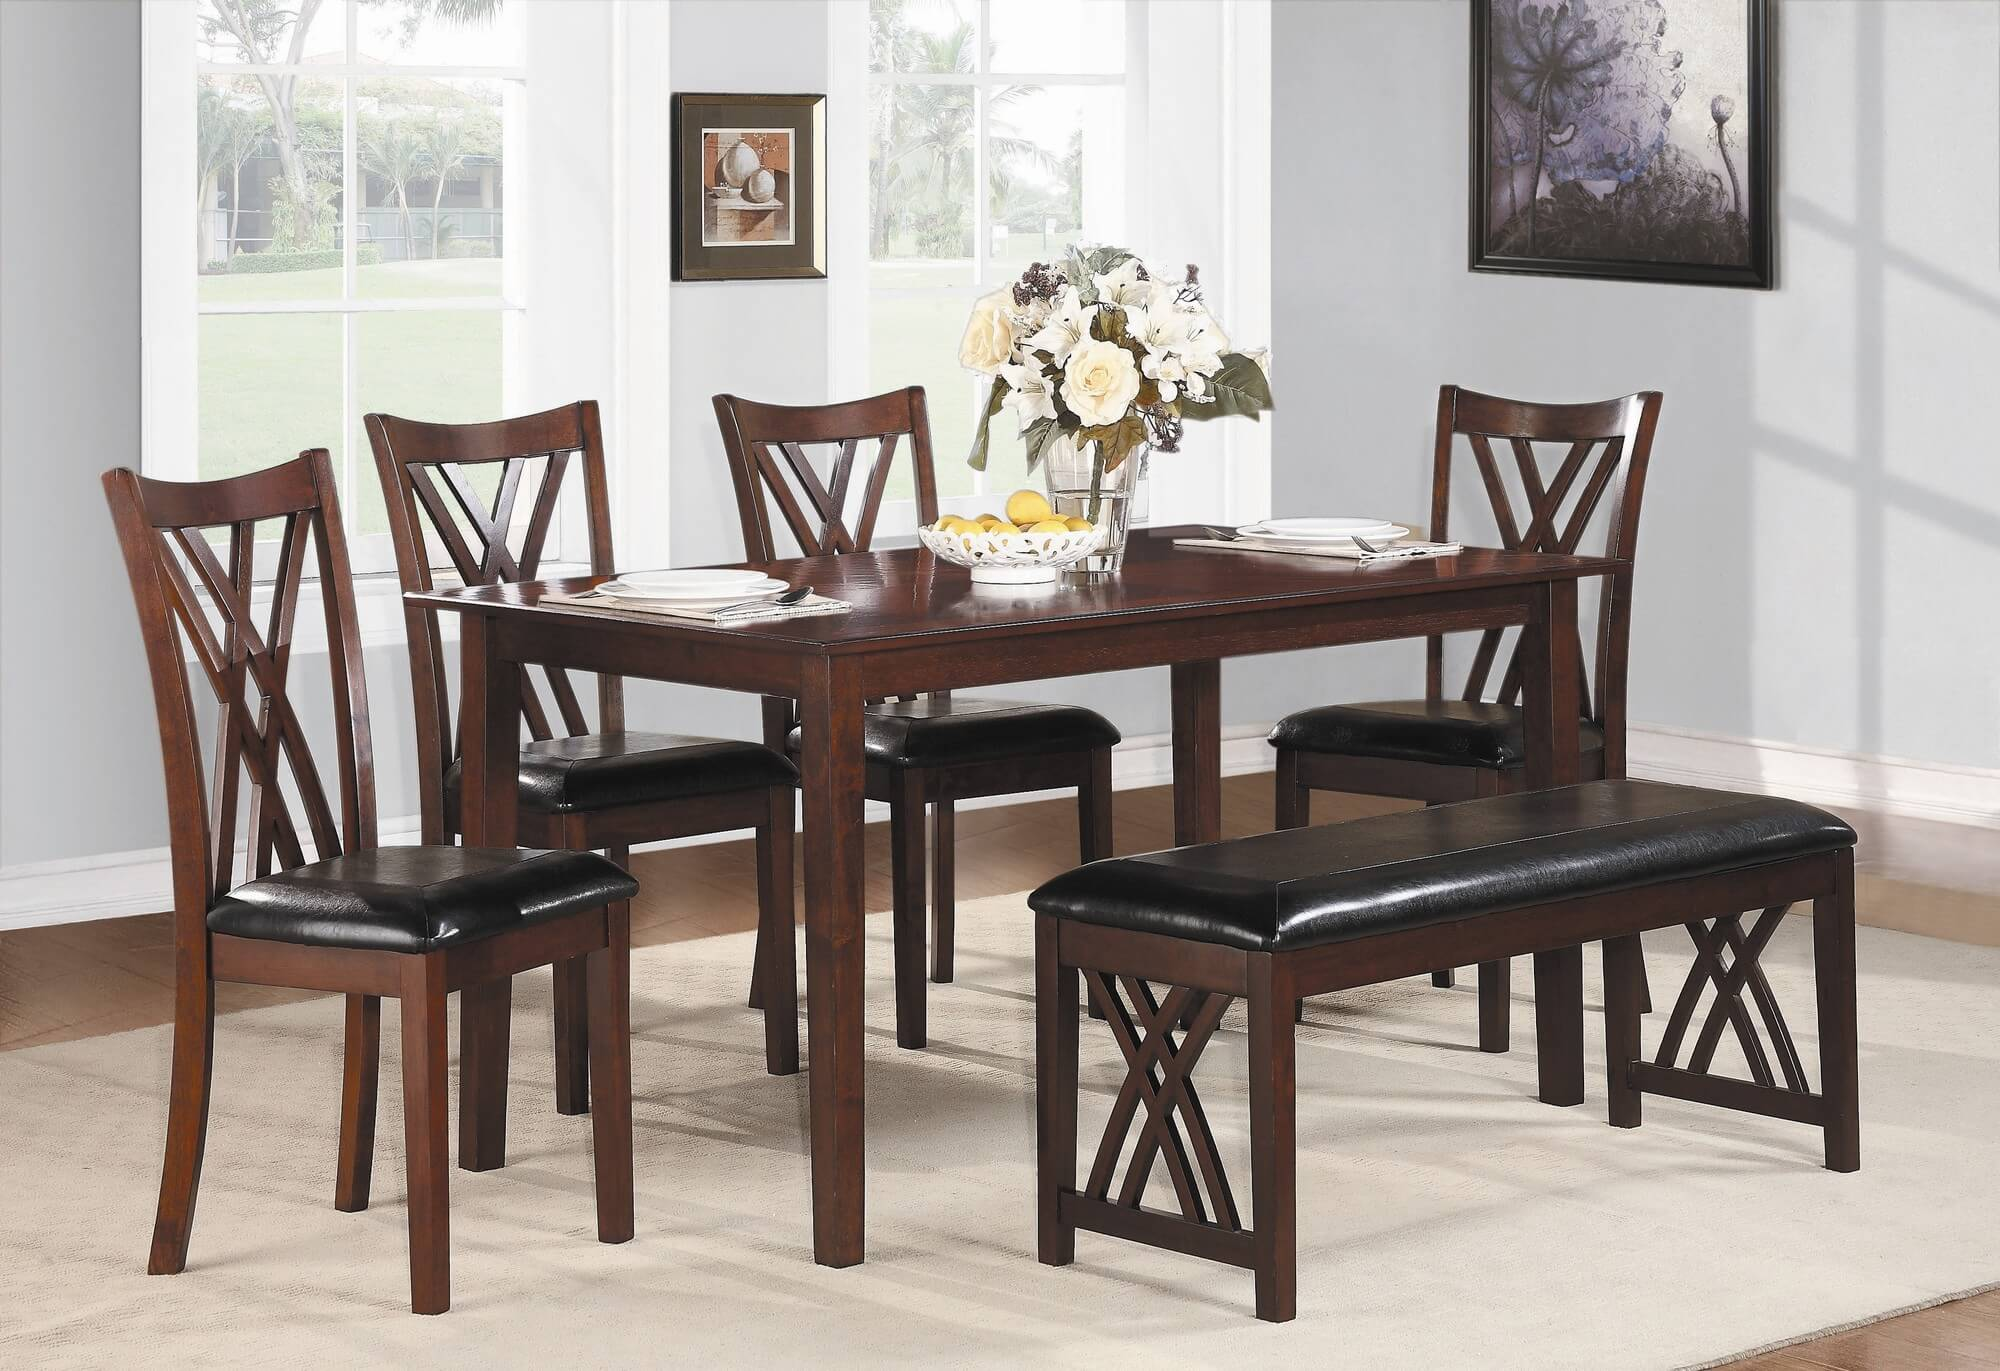 six piece dining set with bench with a cherry finish and upholstered